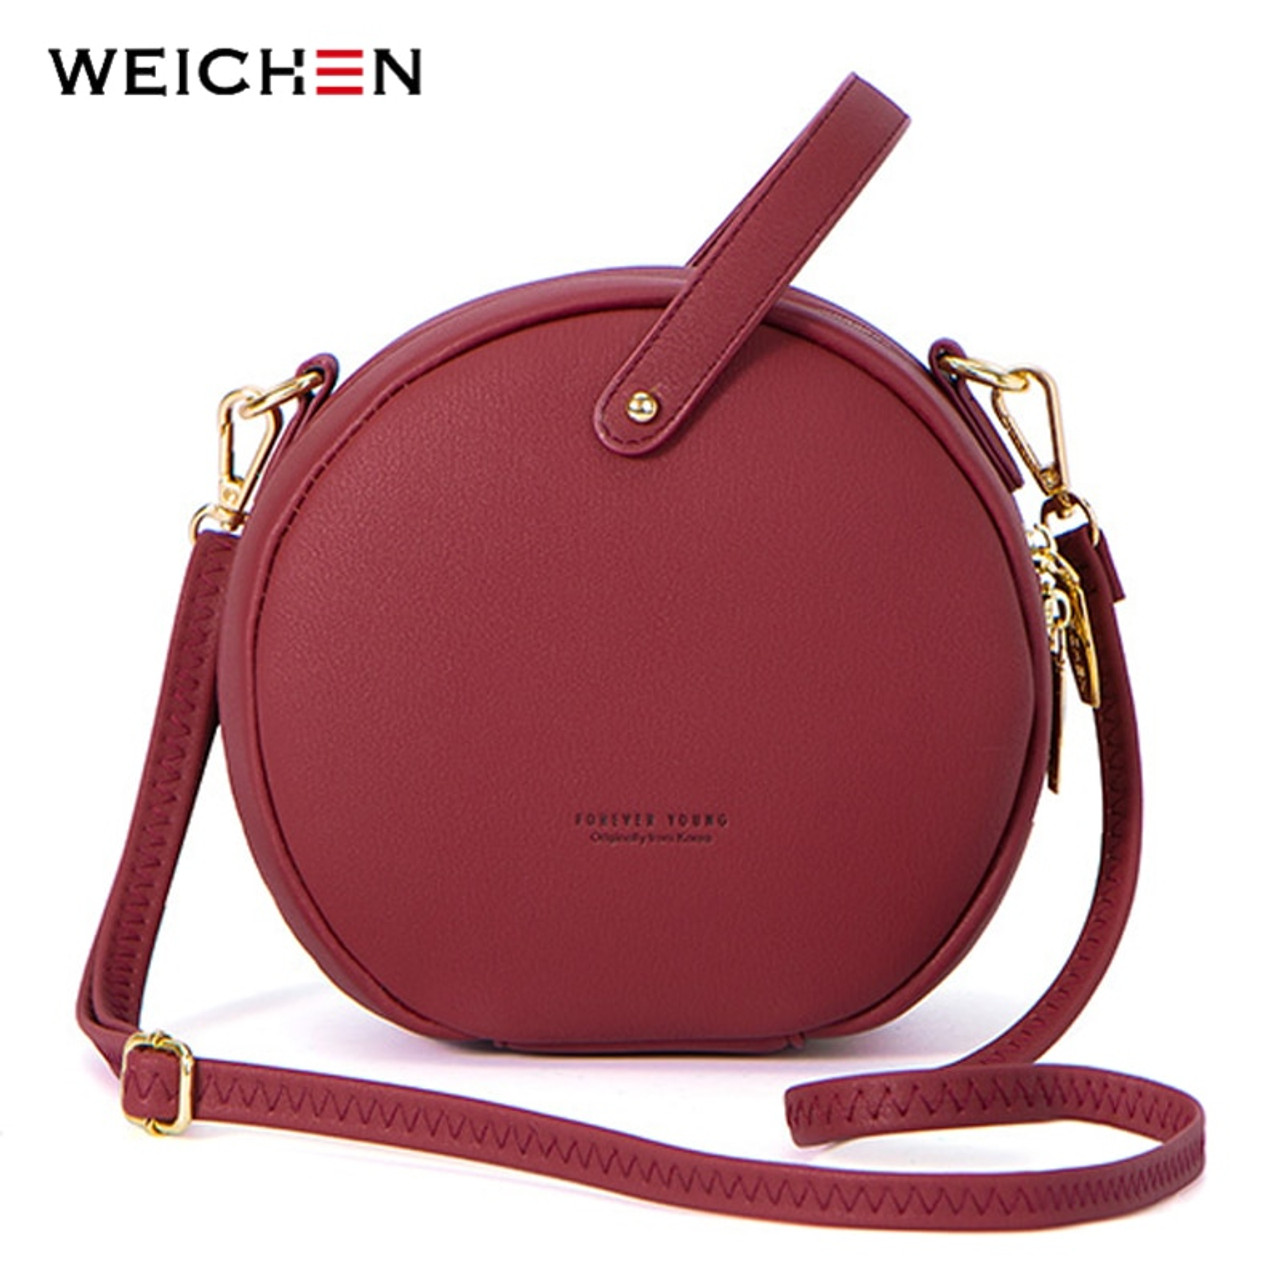 9dfa22d6bd98b HOT Circular Design Fashion Women Shoulder Bag Leather Women's Crossbody  Messenger Bags Ladies Purse Female Round Bolsa Handbag - OnshopDeals.Com